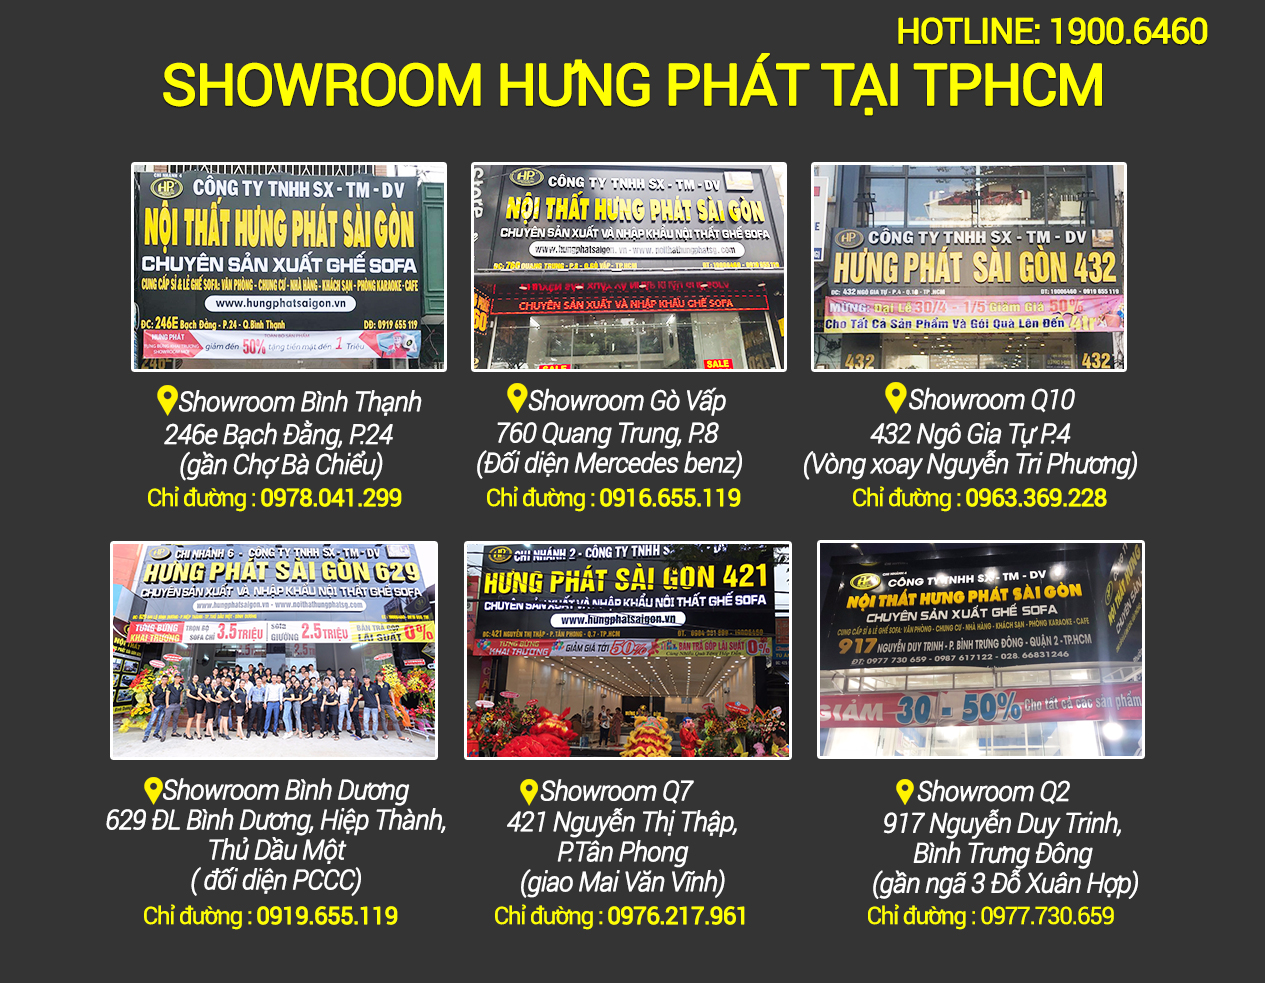 showroom hung phat